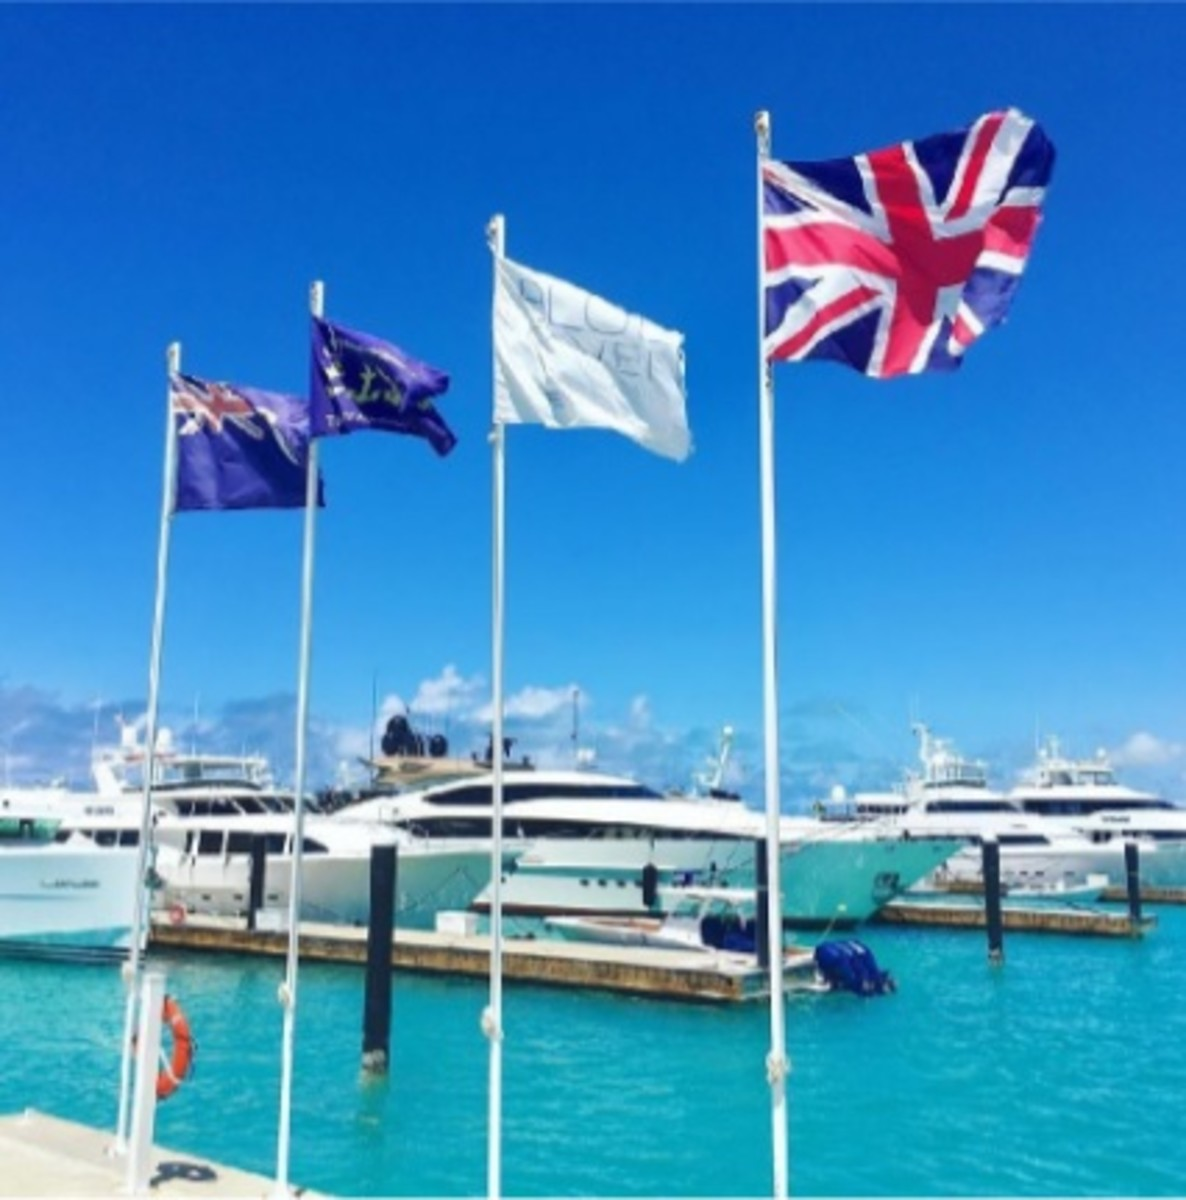 Blue Haven Marina, Turks and Caicos